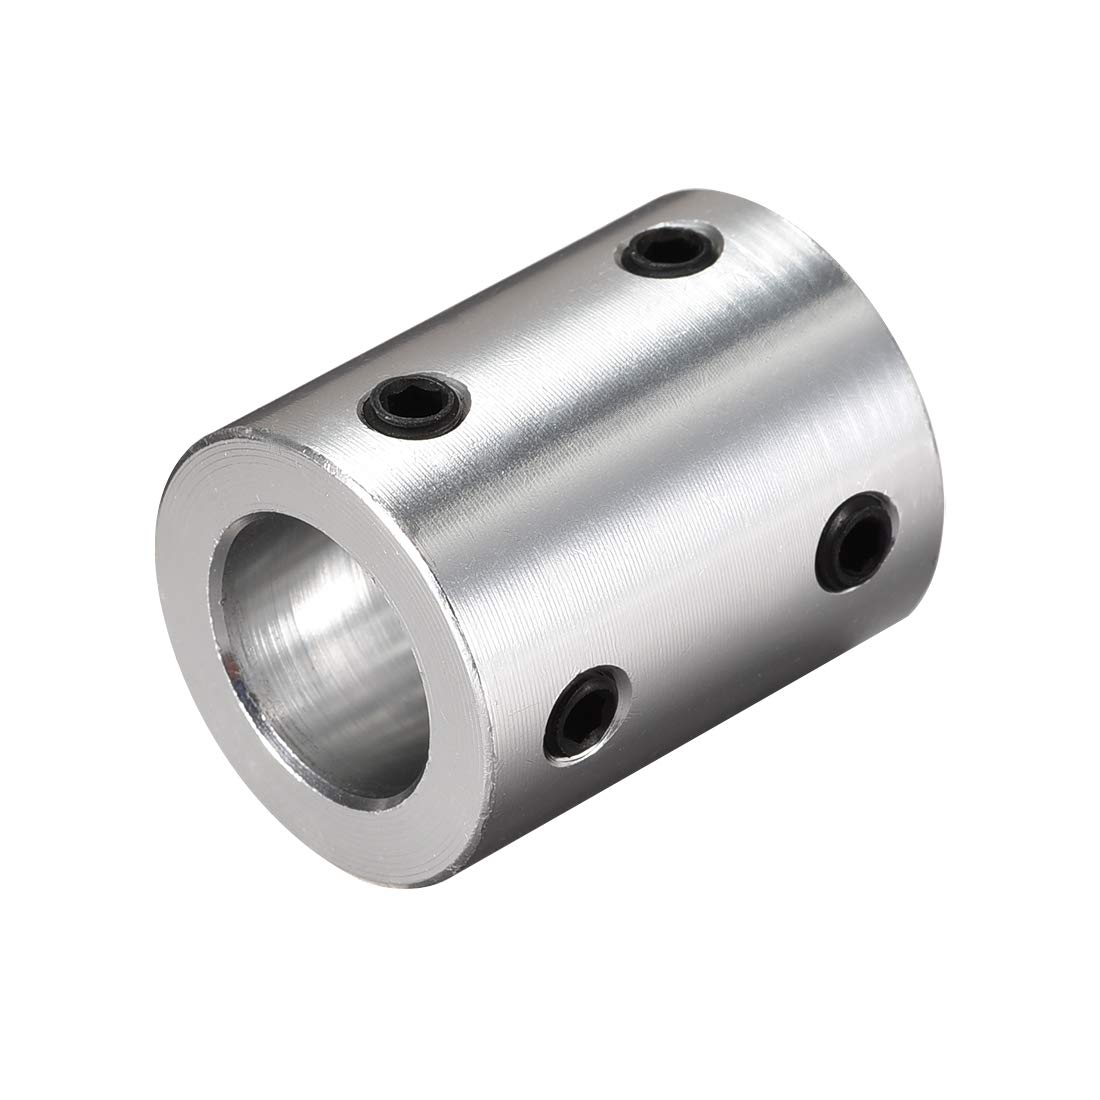 uxcell 3mm to 4mm Bore Rigid Coupling Set Screw L26XD10 Aluminum Alloy,Shaft Coupler Connector,Motor Accessories